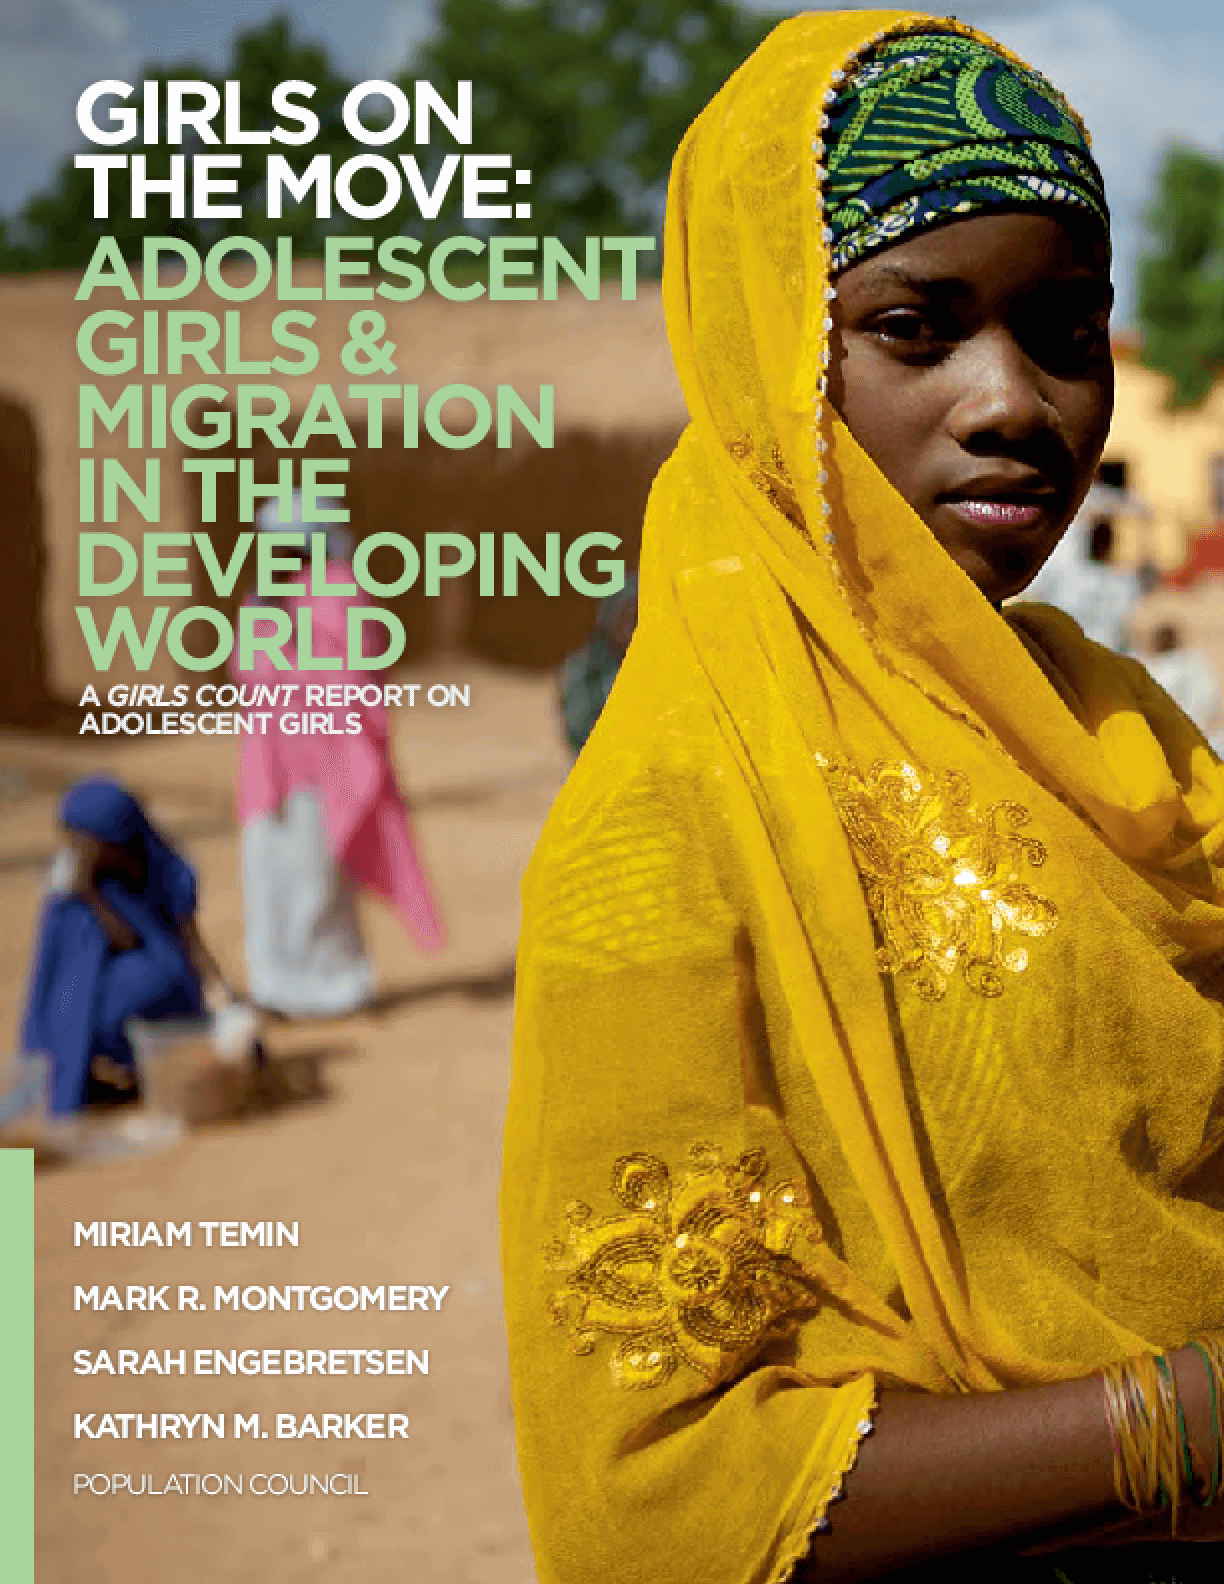 Girls on the Move: Adolescent Girls and Migration in the Developing World